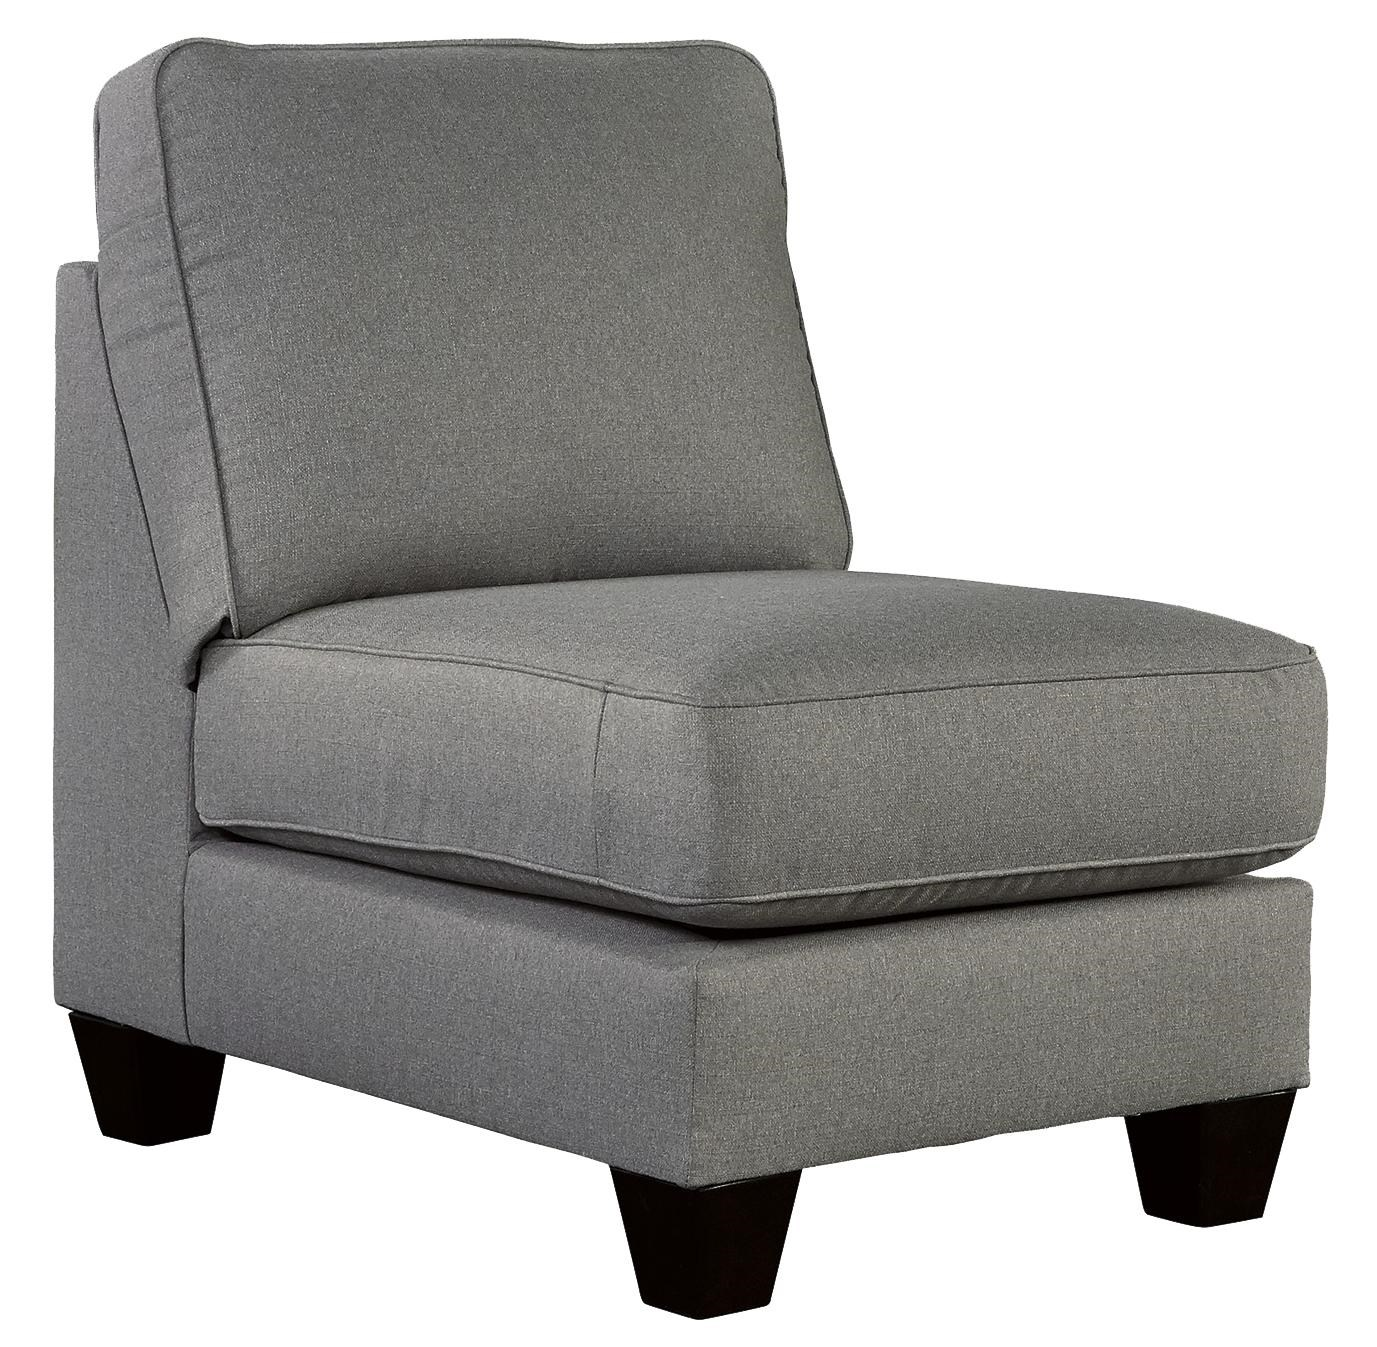 StyleLine Chamberly   Alloy Contemporary Armless Chair